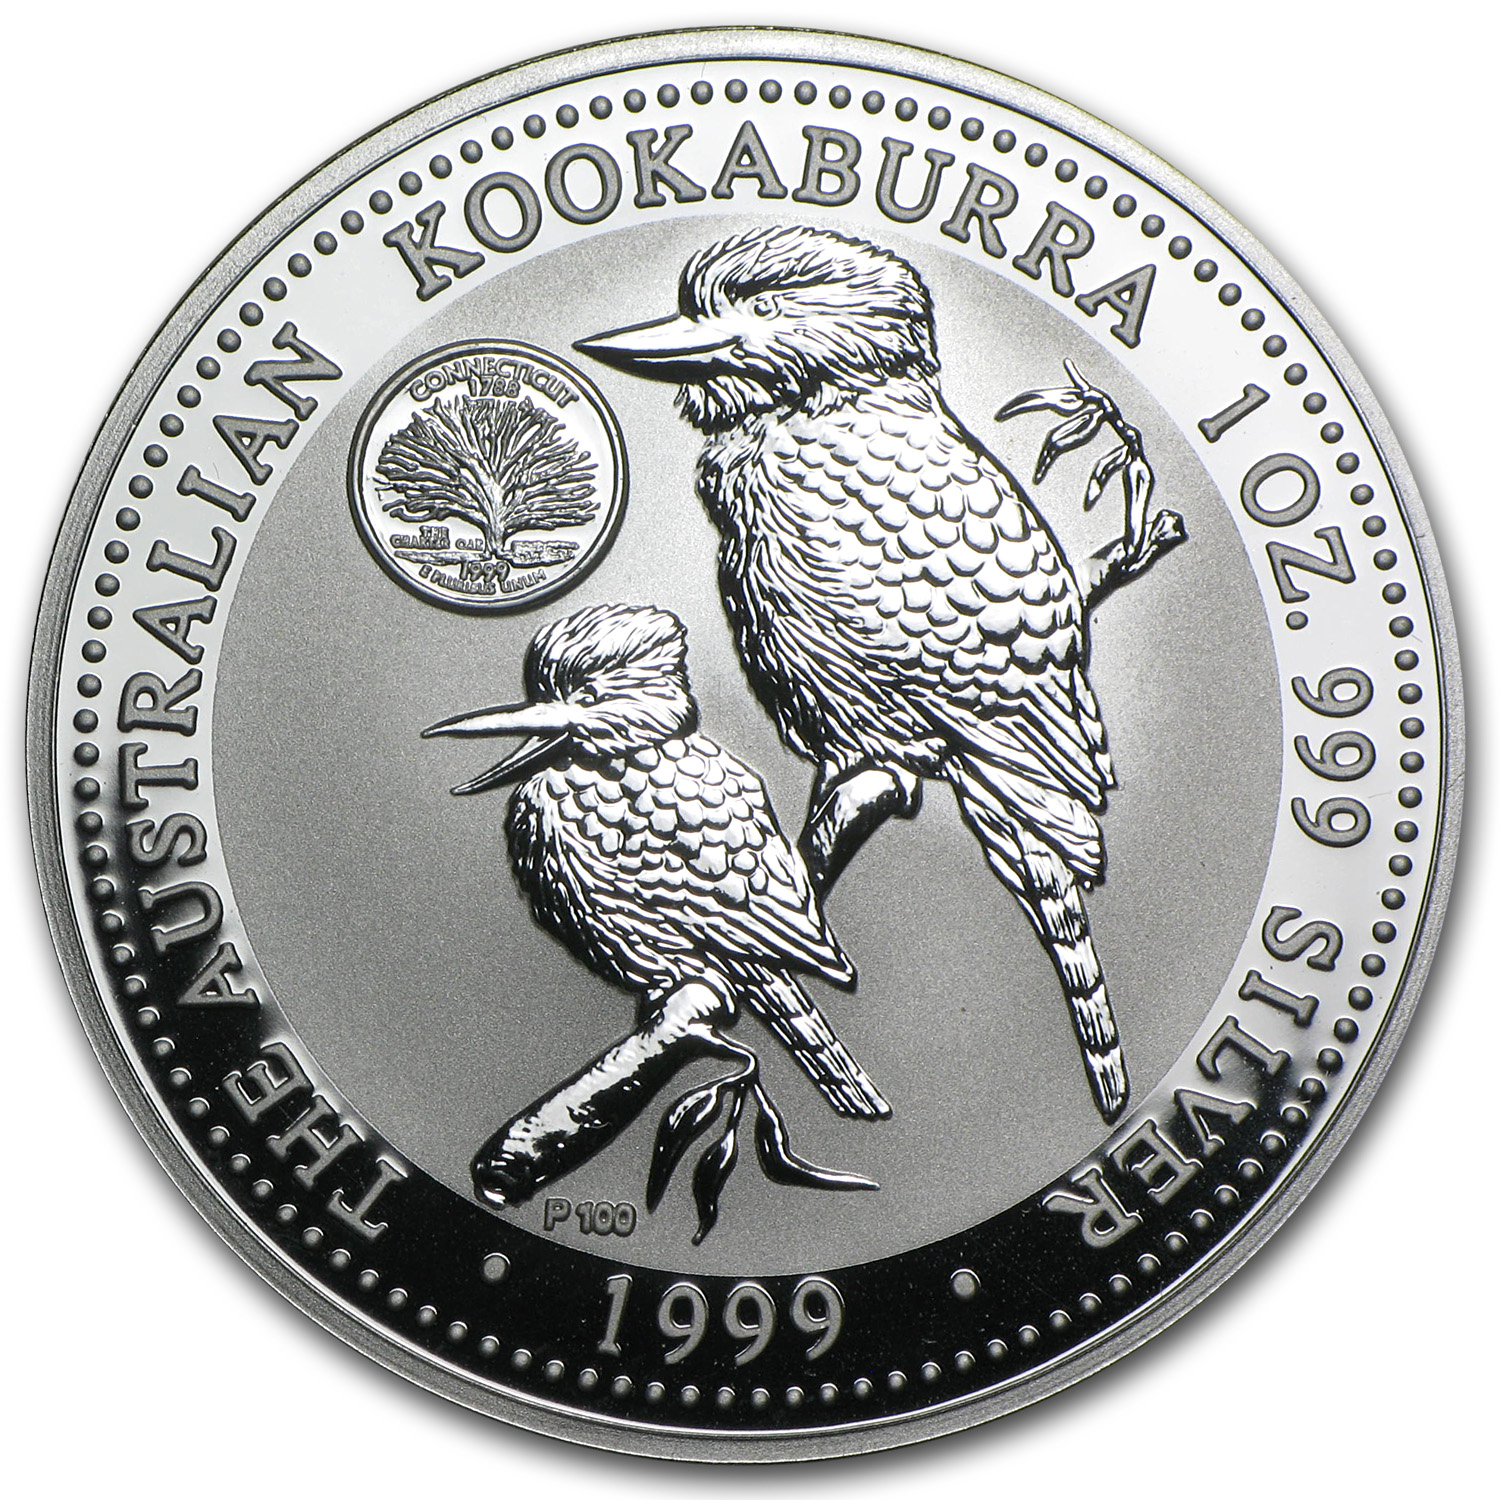 1999 1 oz Silver Kookaburra BU (Connecticut Quarter Privy)